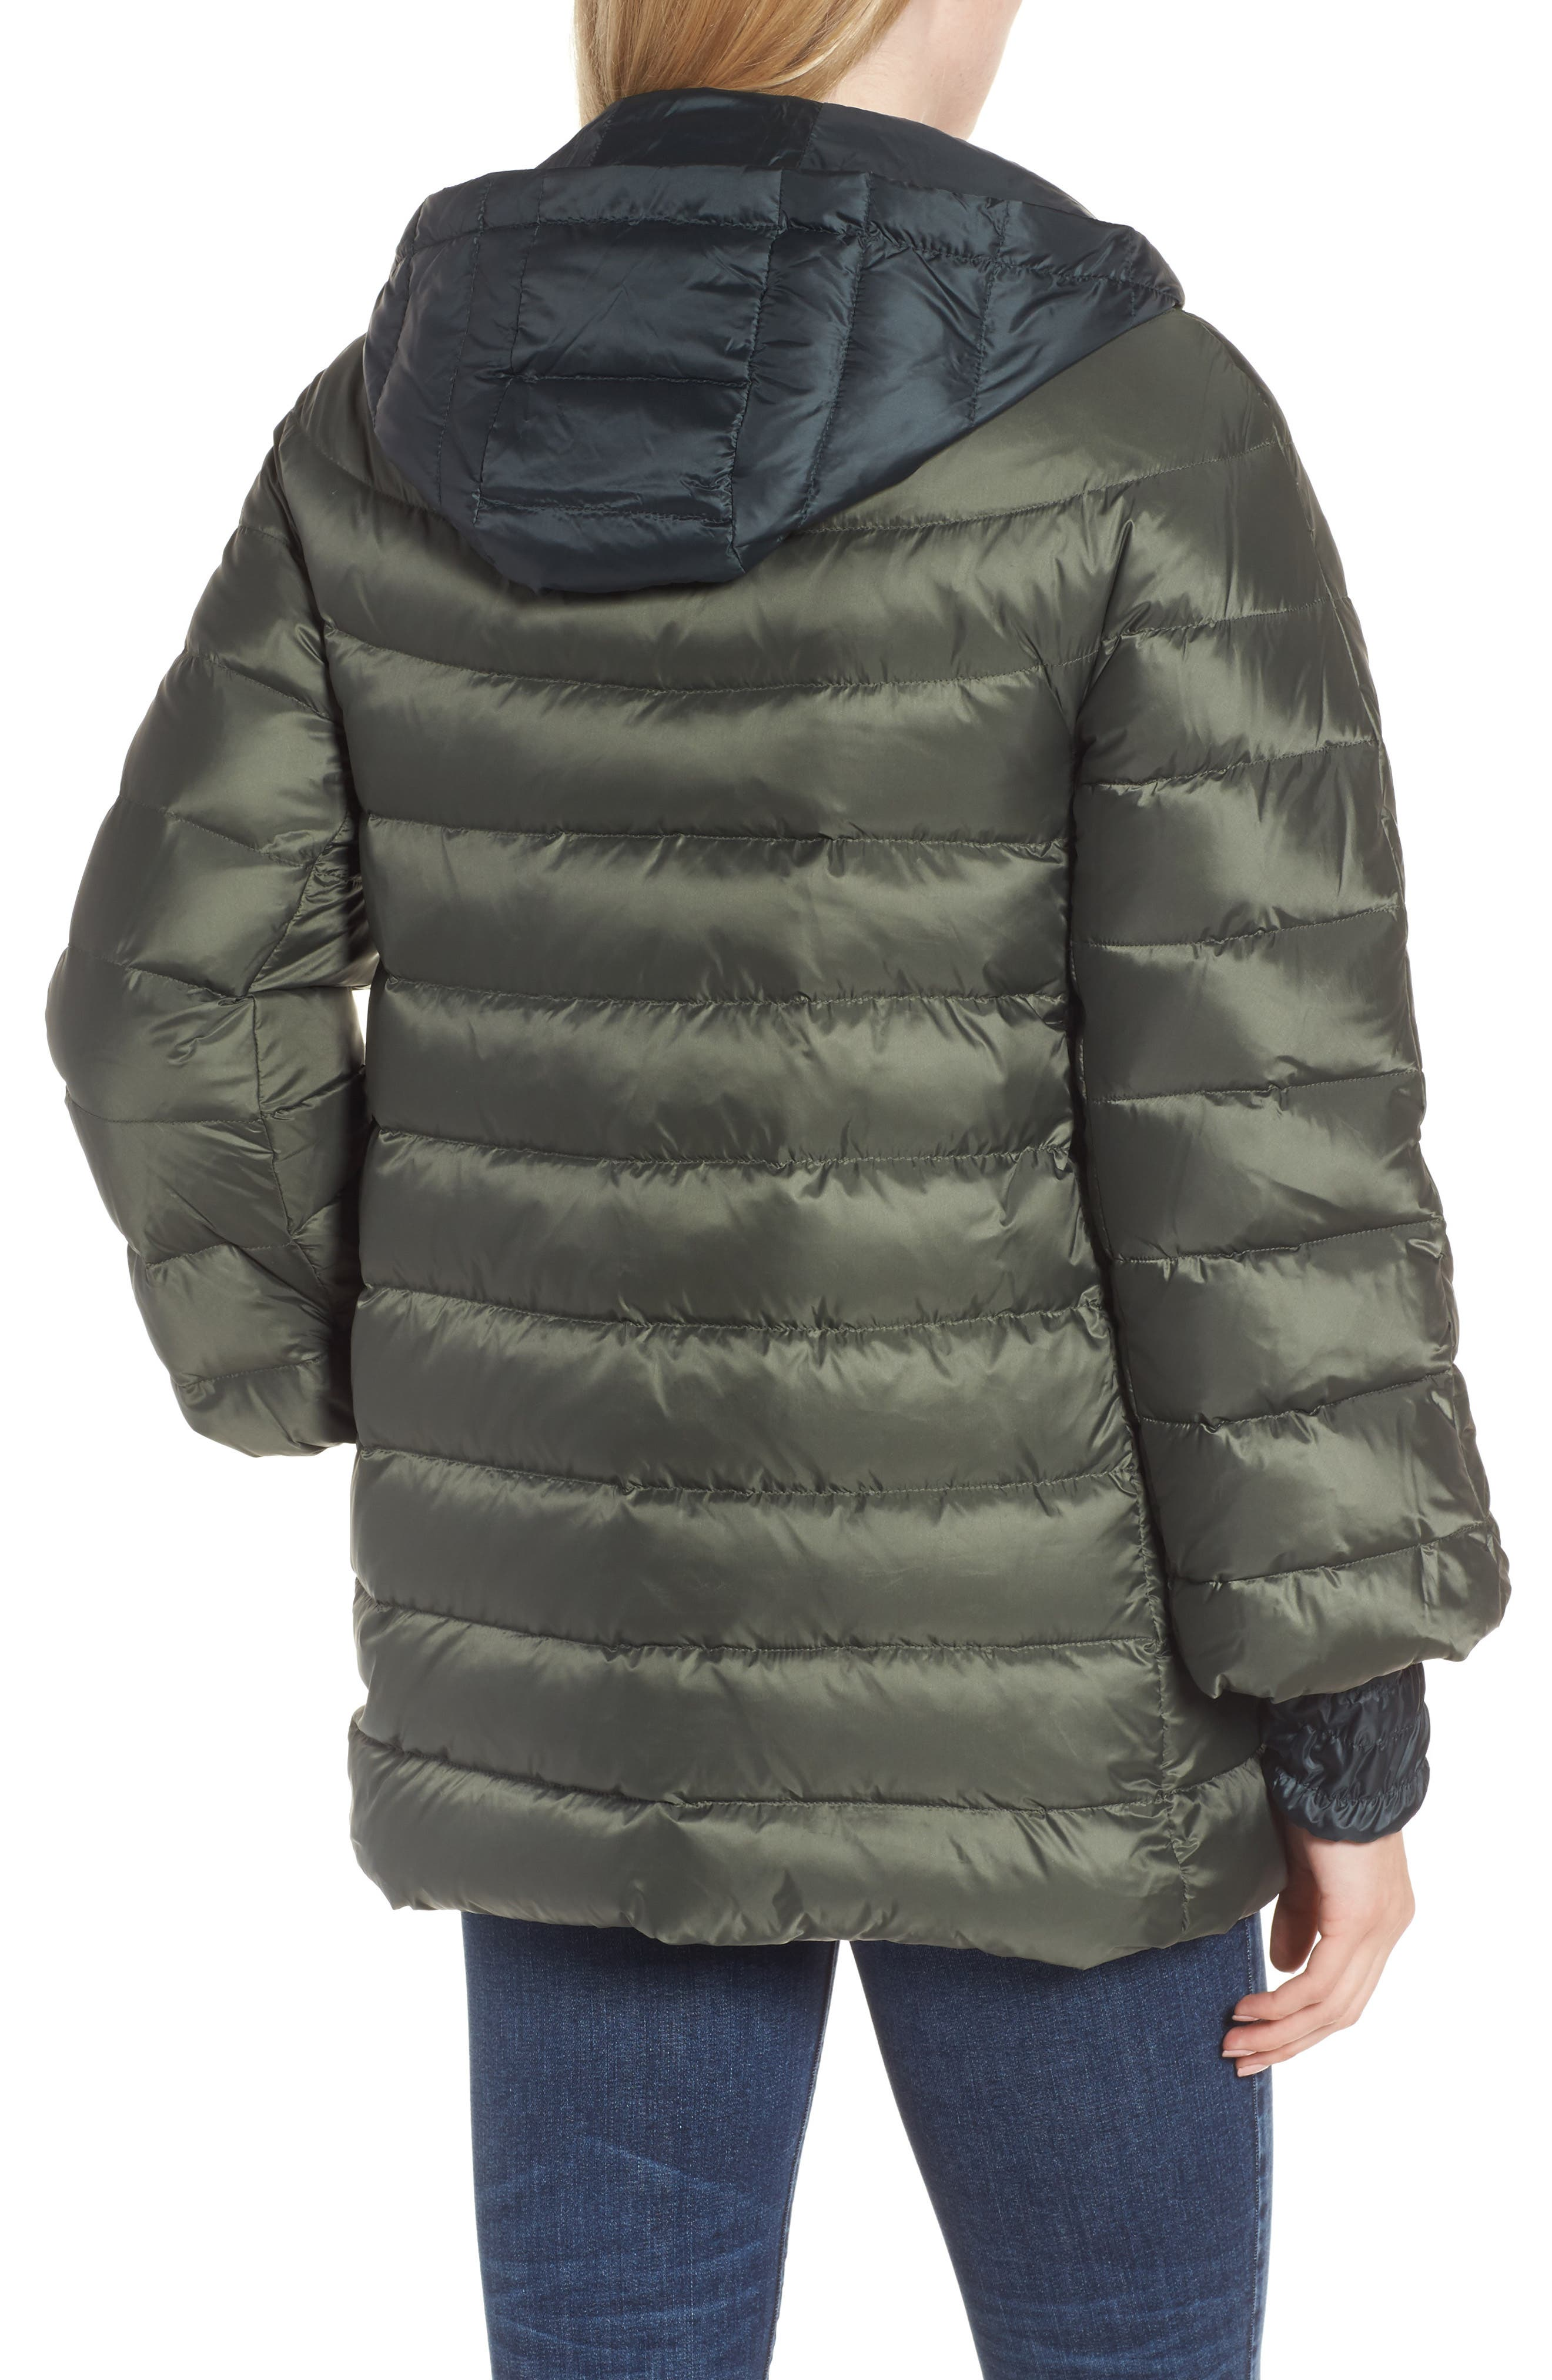 3-in-1 Layered Packable Quilted Down Coat,                             Alternate thumbnail 4, color,